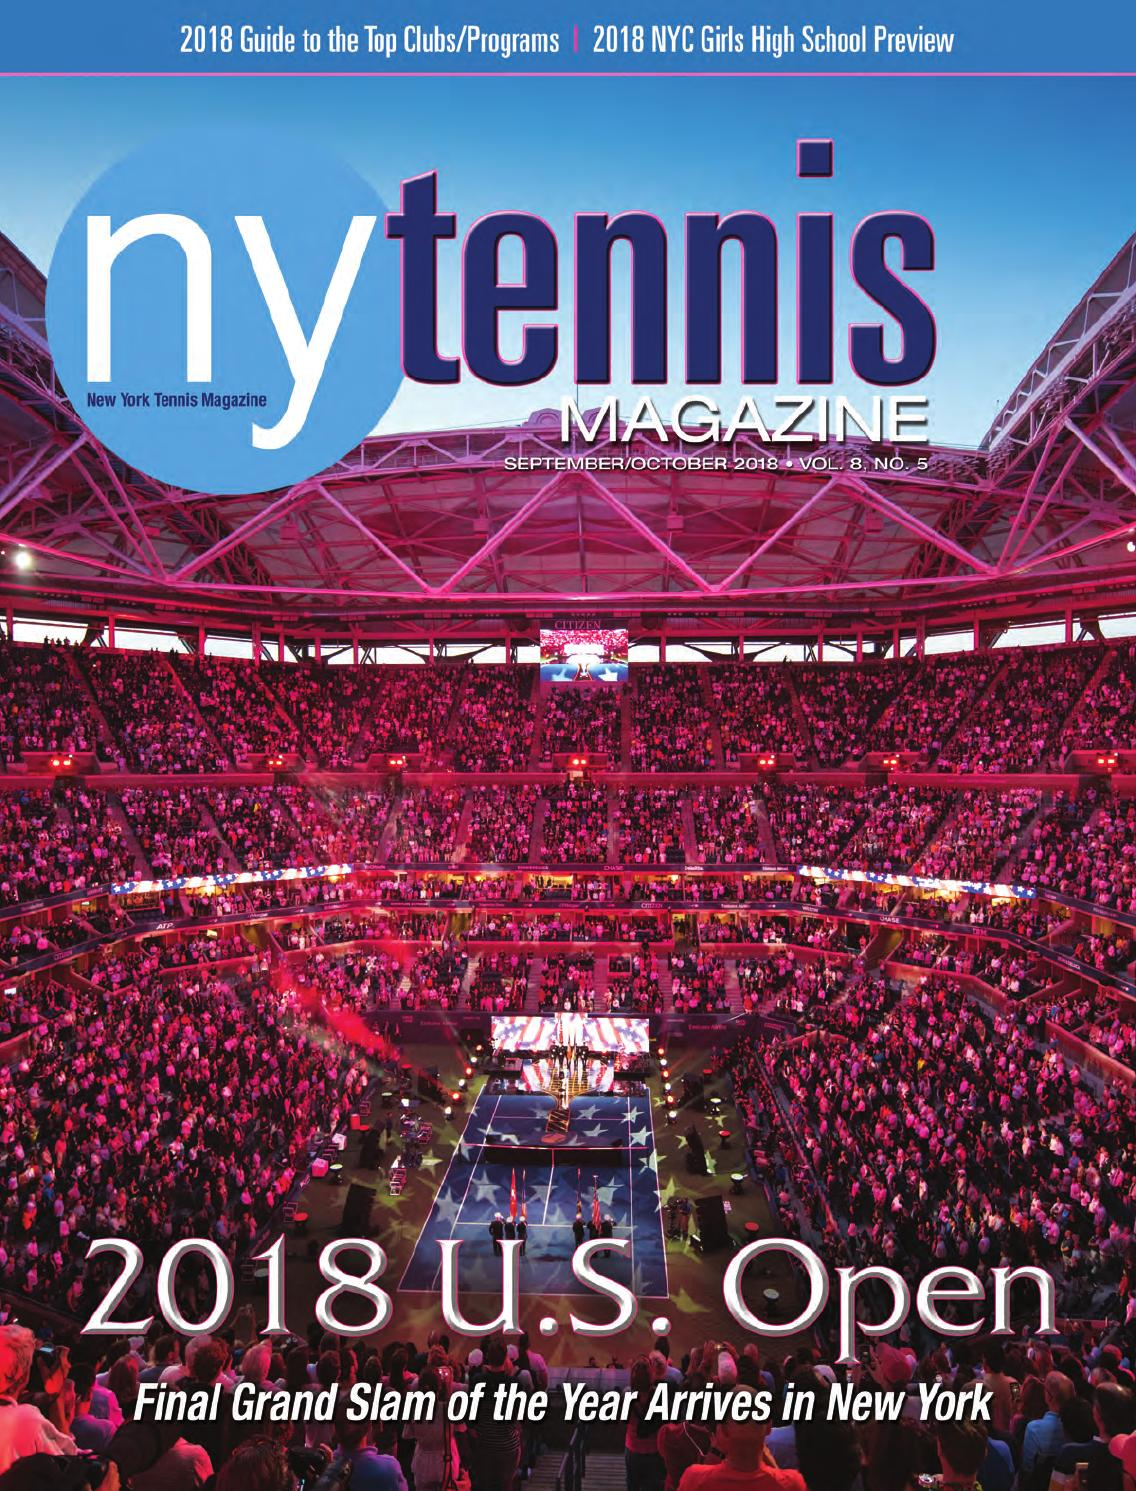 New York Tennis Magazine September - October 2018 by NMP Media Corp